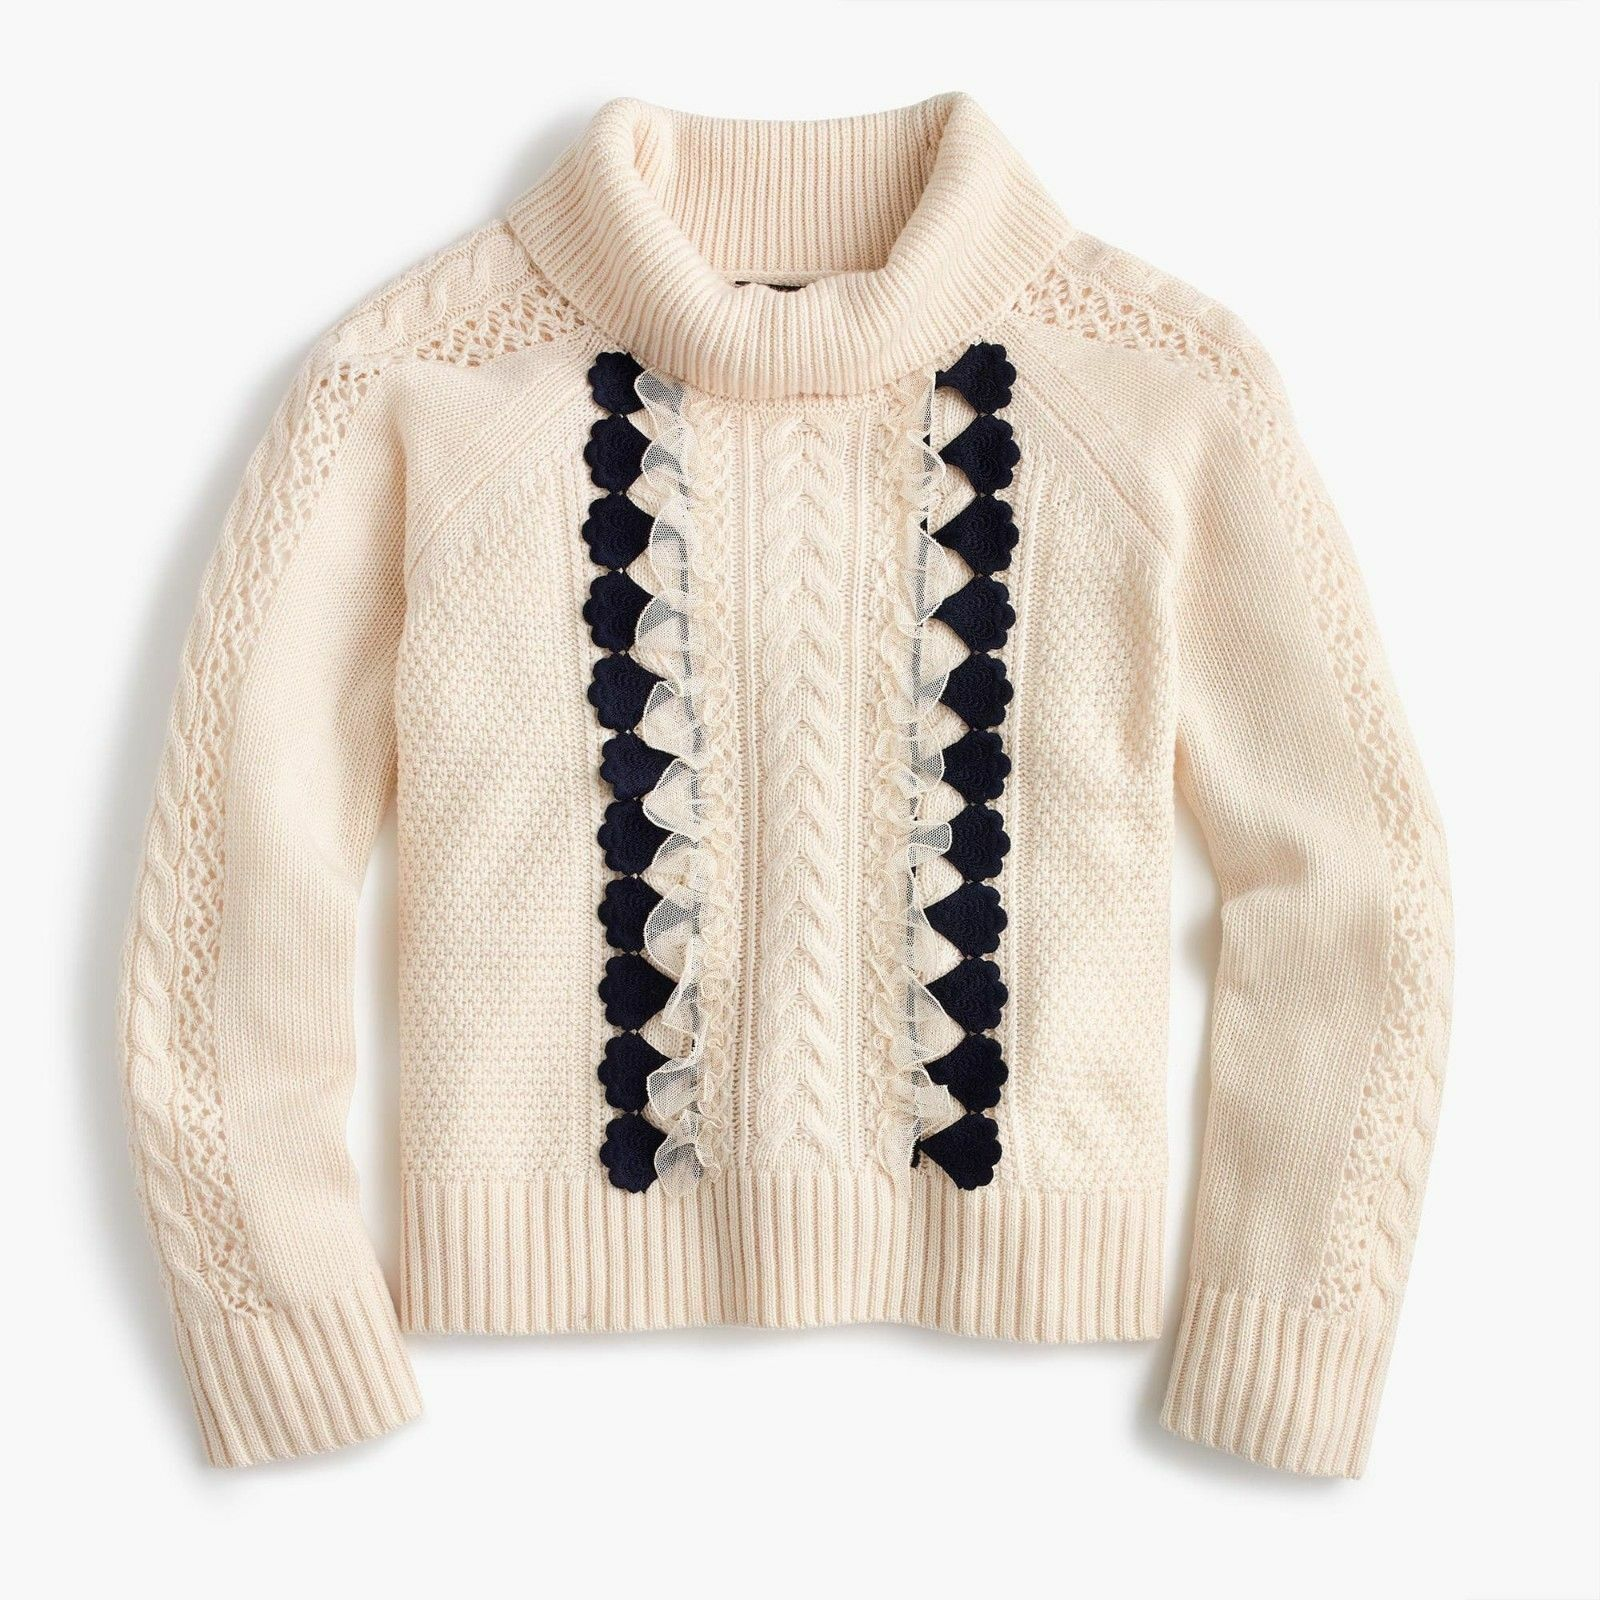 NWT JCREW EMBELLISHED CABLE SWEATER HEATHER MUSLIN CREAM -Sz M